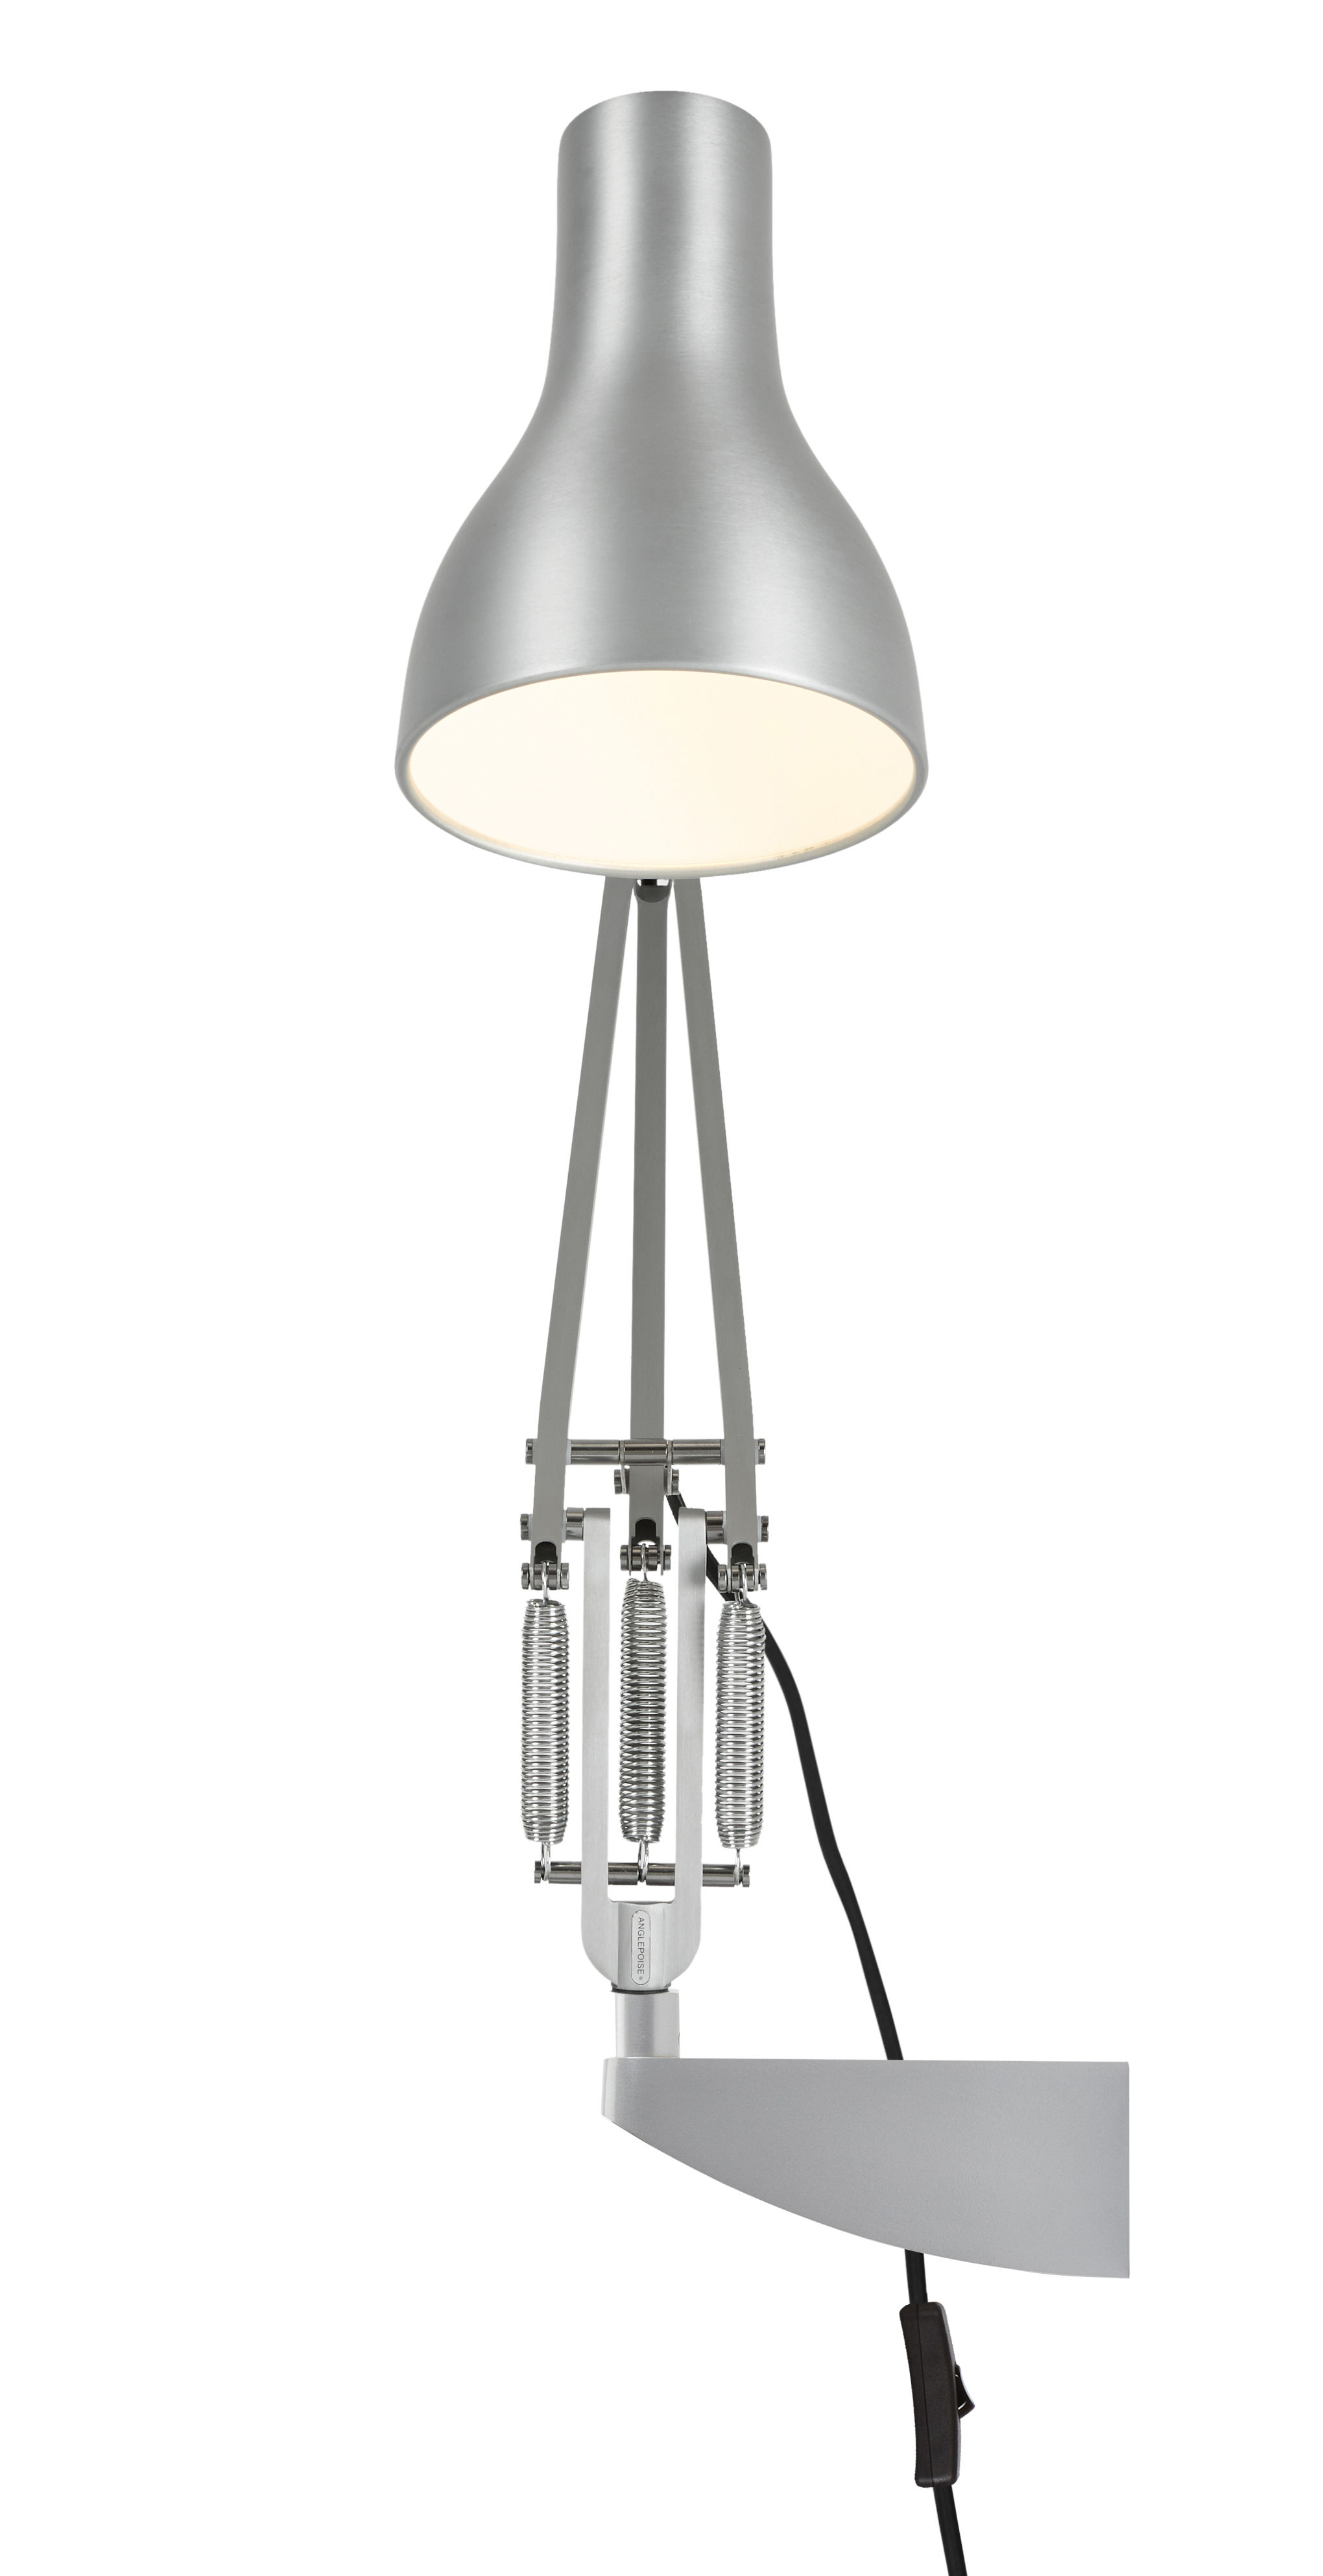 Lighting - Wall Lights - Wall fastening - For the Anglepoise lamps by Anglepoise - Chromed - Aluminium